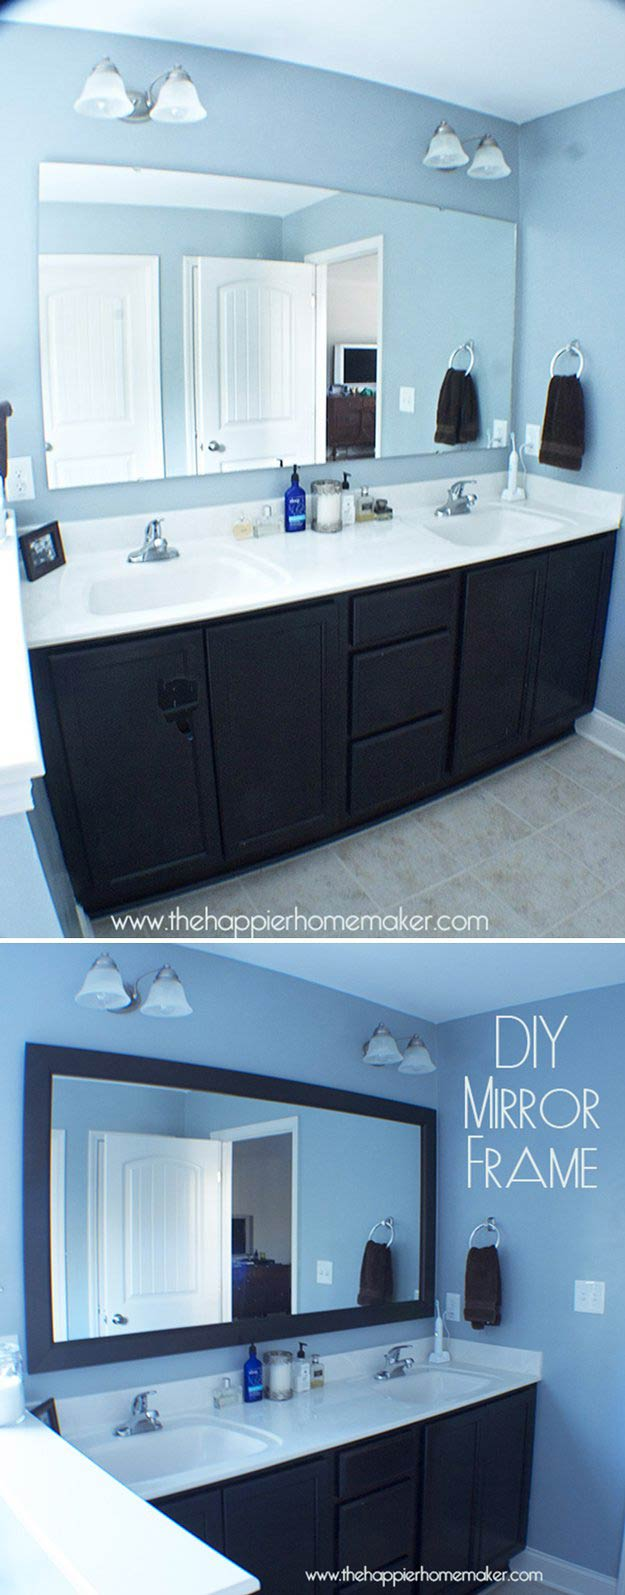 2. DIY Mirror Frame